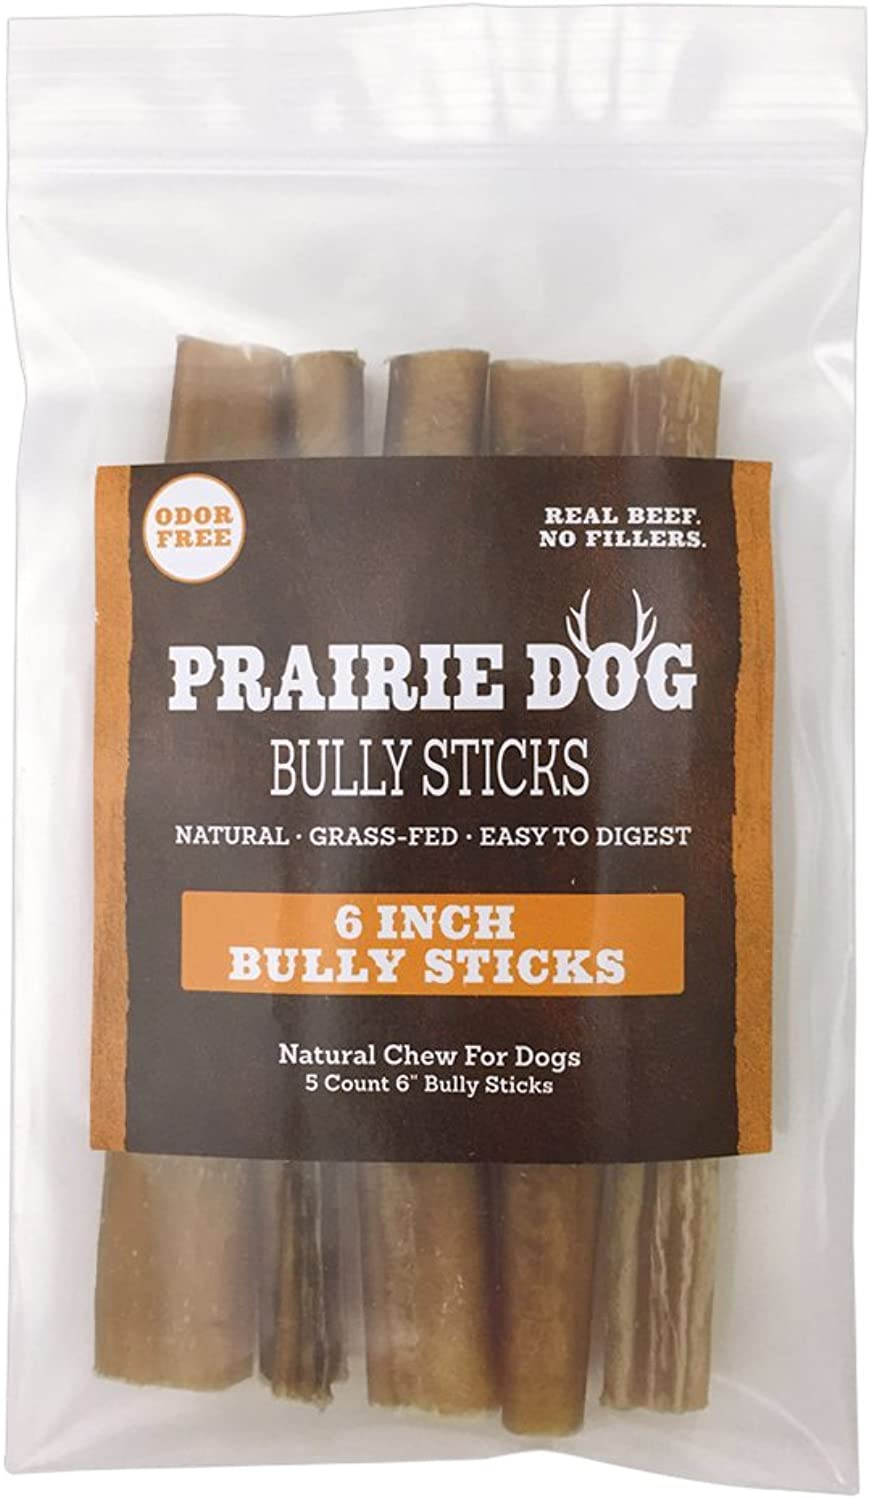 Prairie Dog Pet Products 5 Count Odor Free Bully Sticks, 6